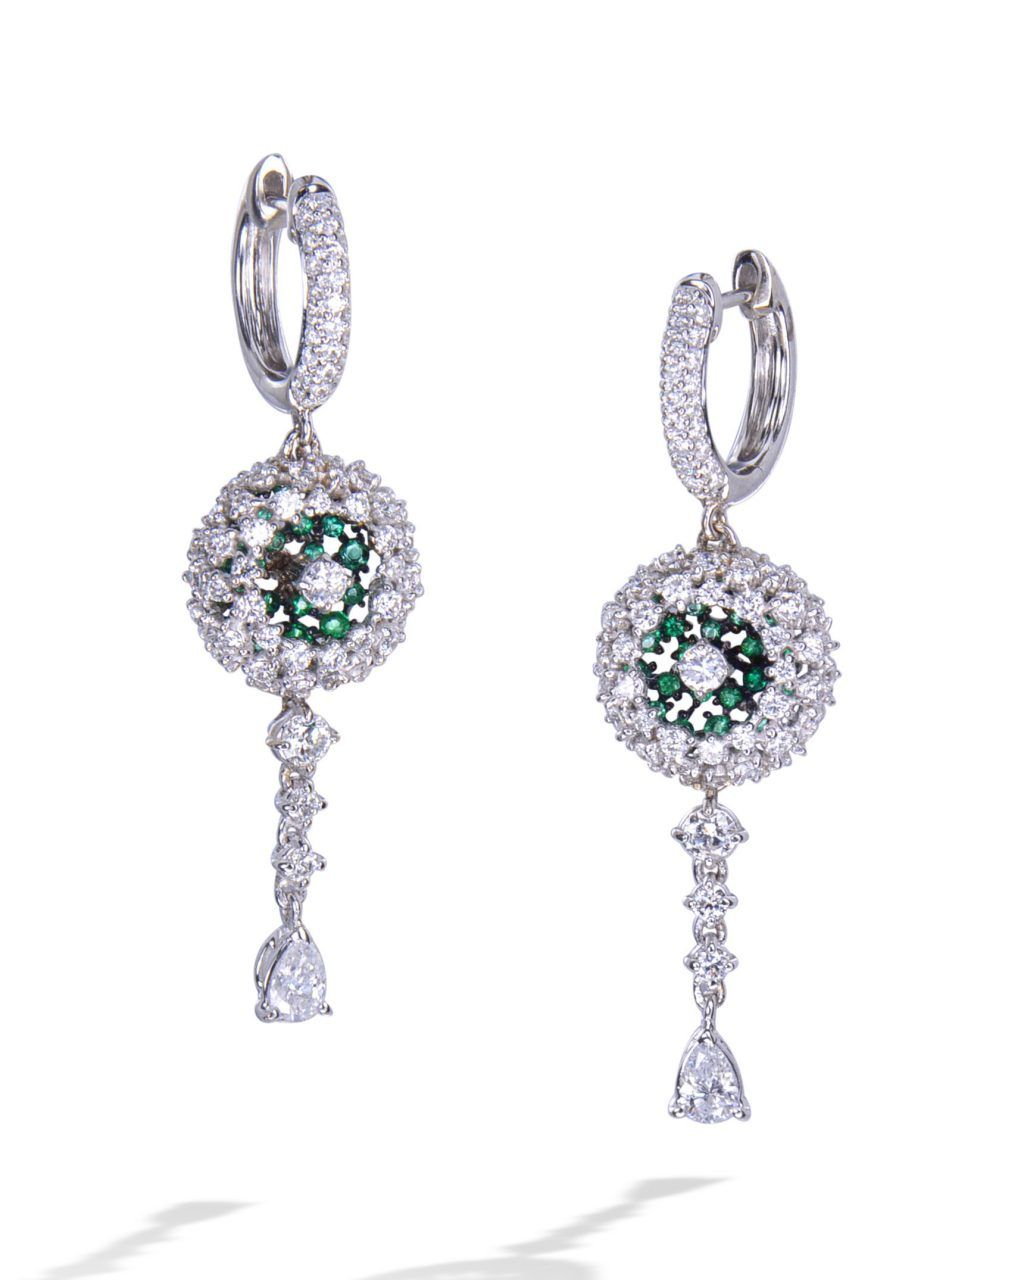 52b7b61d7 Beautiful pair of emerald and diamond pavé-set drop dangle earrings mounted  in 18 karat white gold.